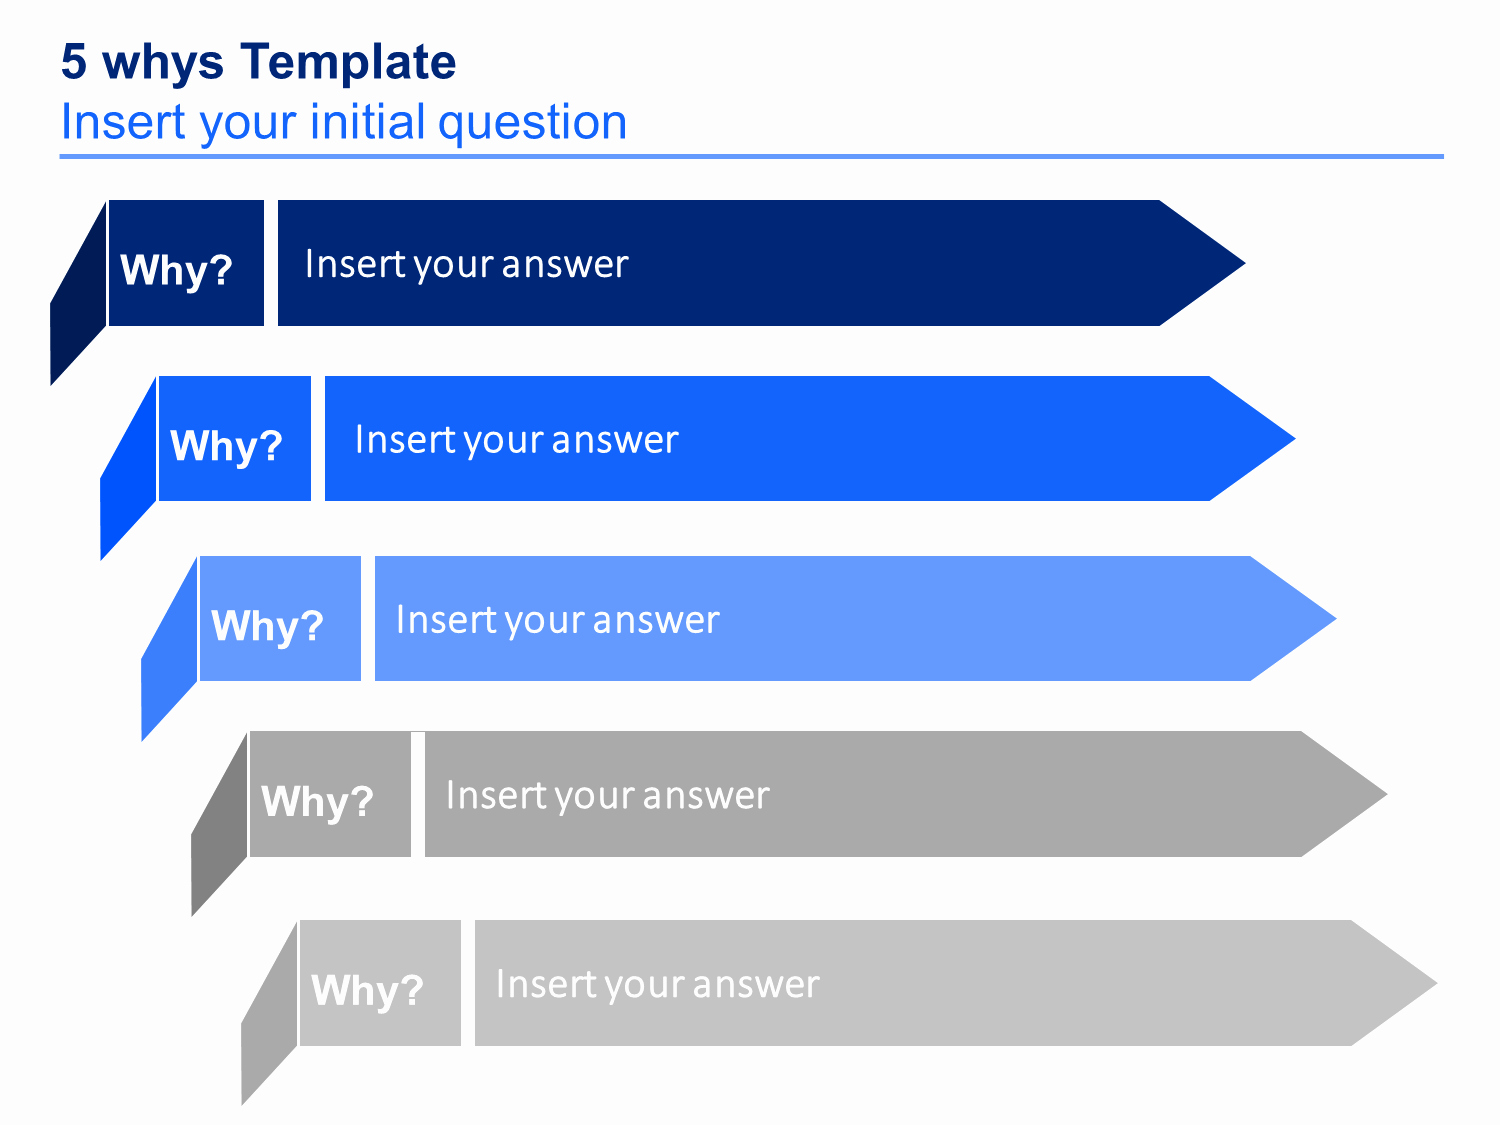 Root Cause Analysis Excel Template New 5 whys Templates 5 whys Template